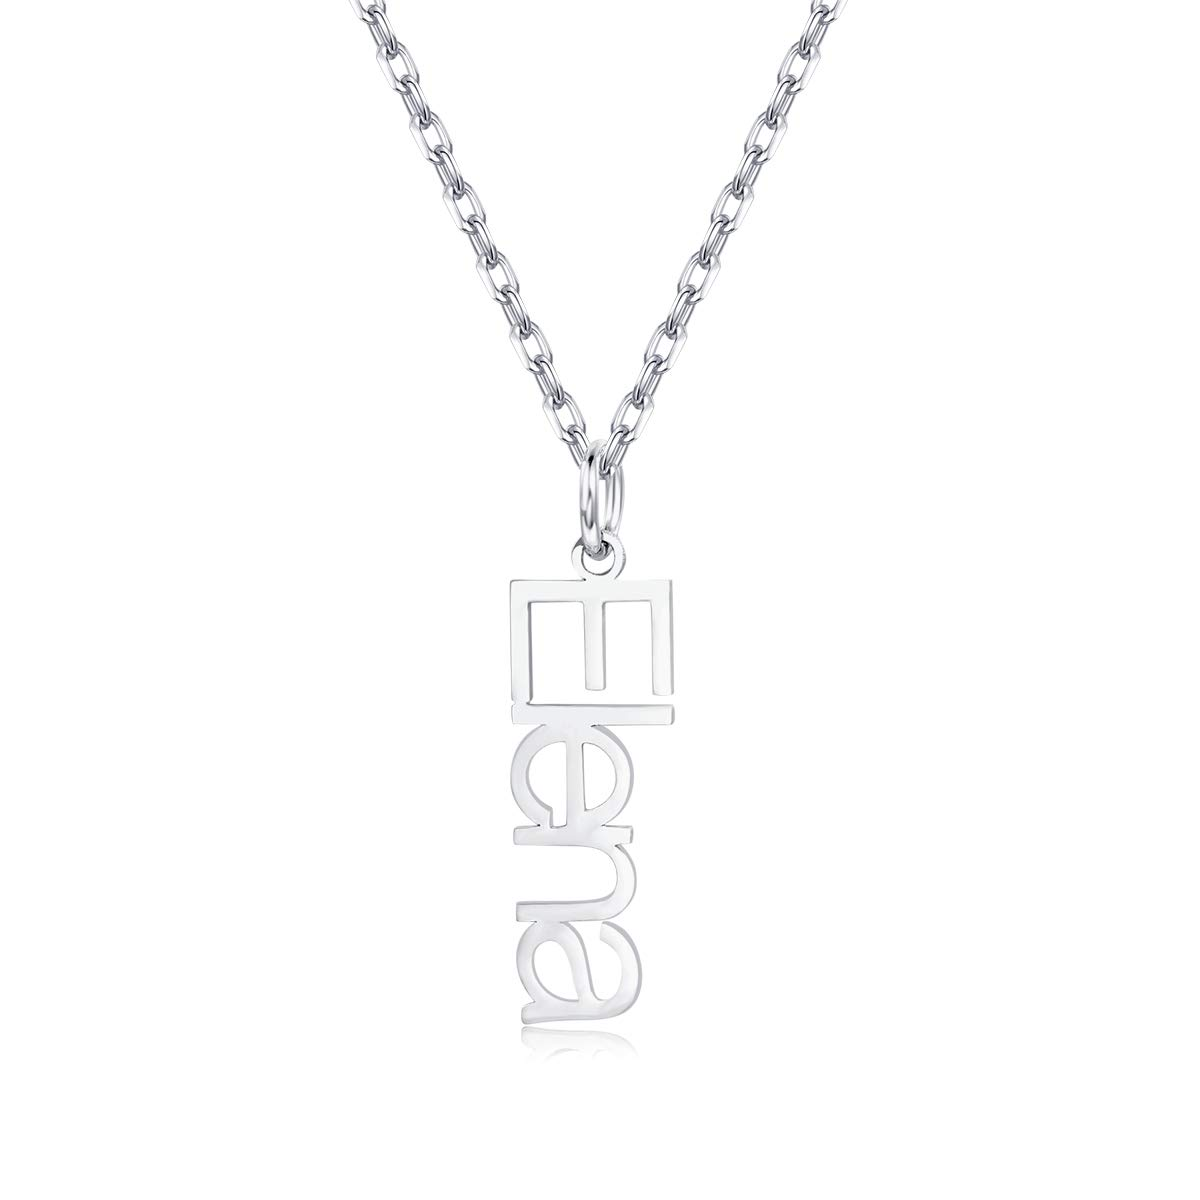 EverThanMore Vertical Name Necklace Personalized Custom Name Necklace for Her